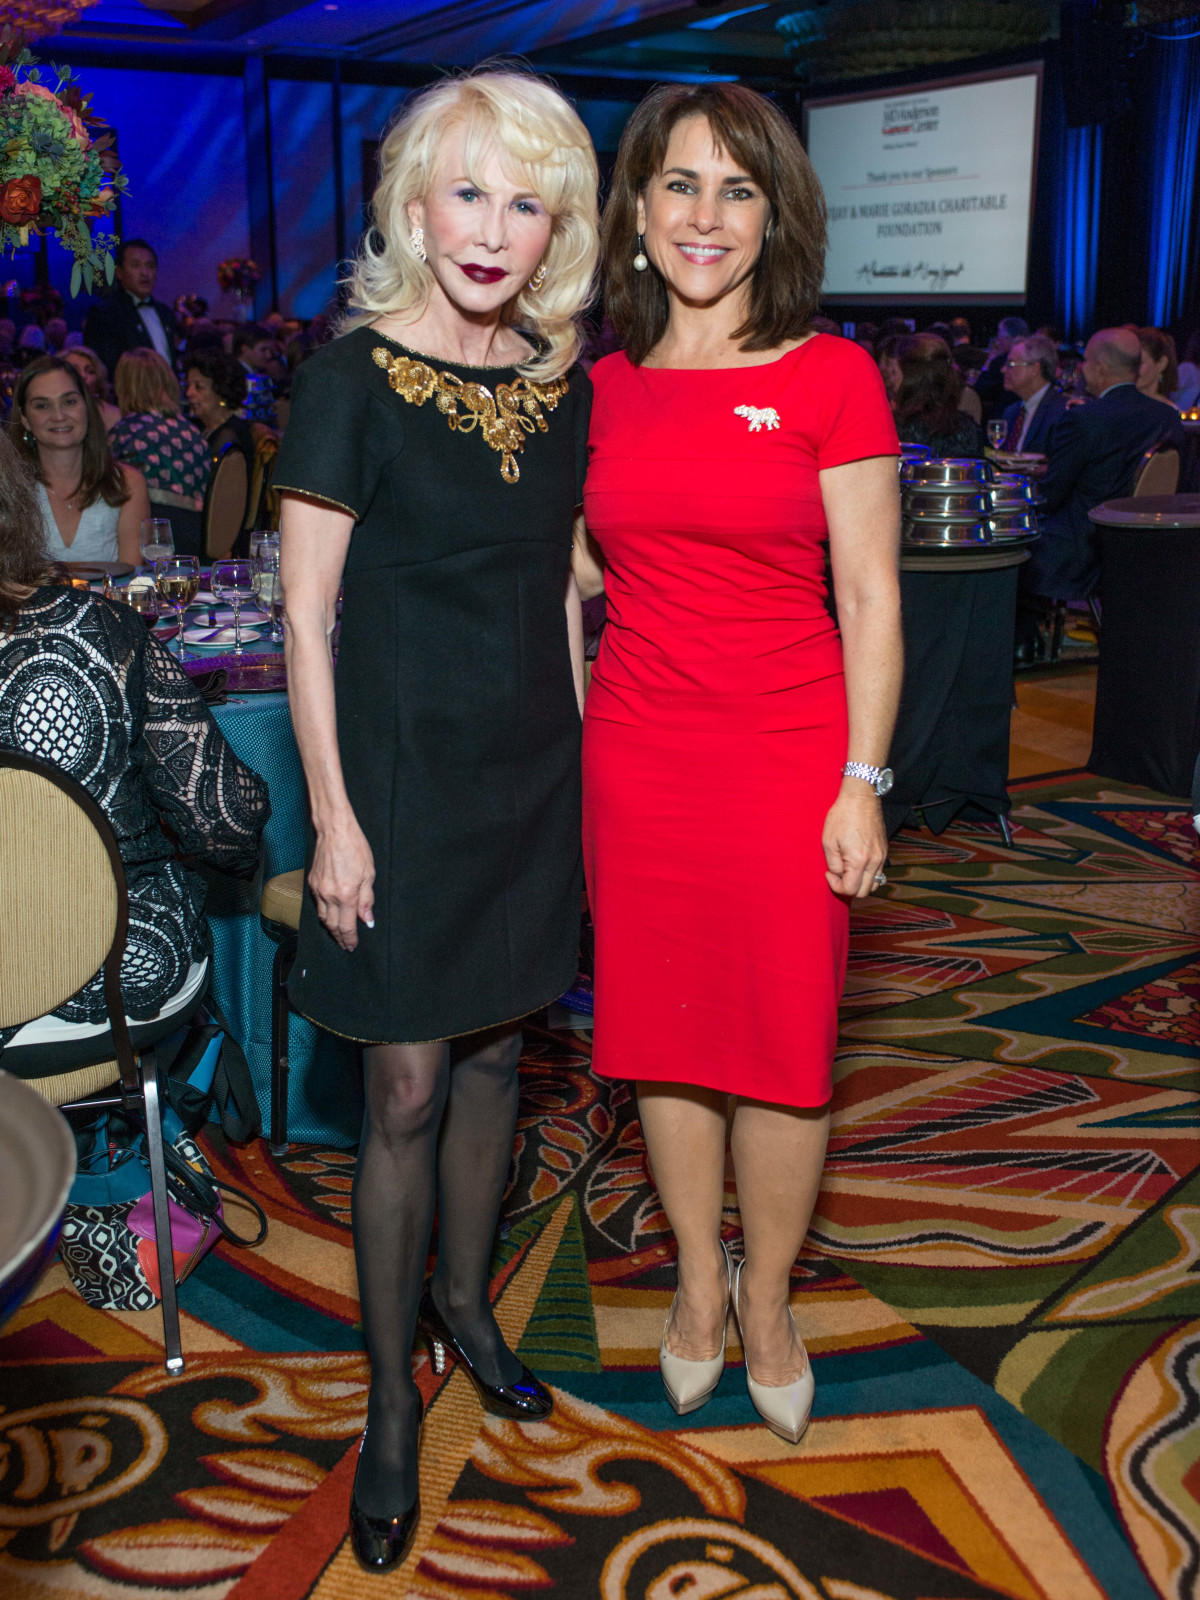 News, Shelby, MD Anderson Living Legend, Nov. 2015, Diane Lokey Farb, Maria Bush